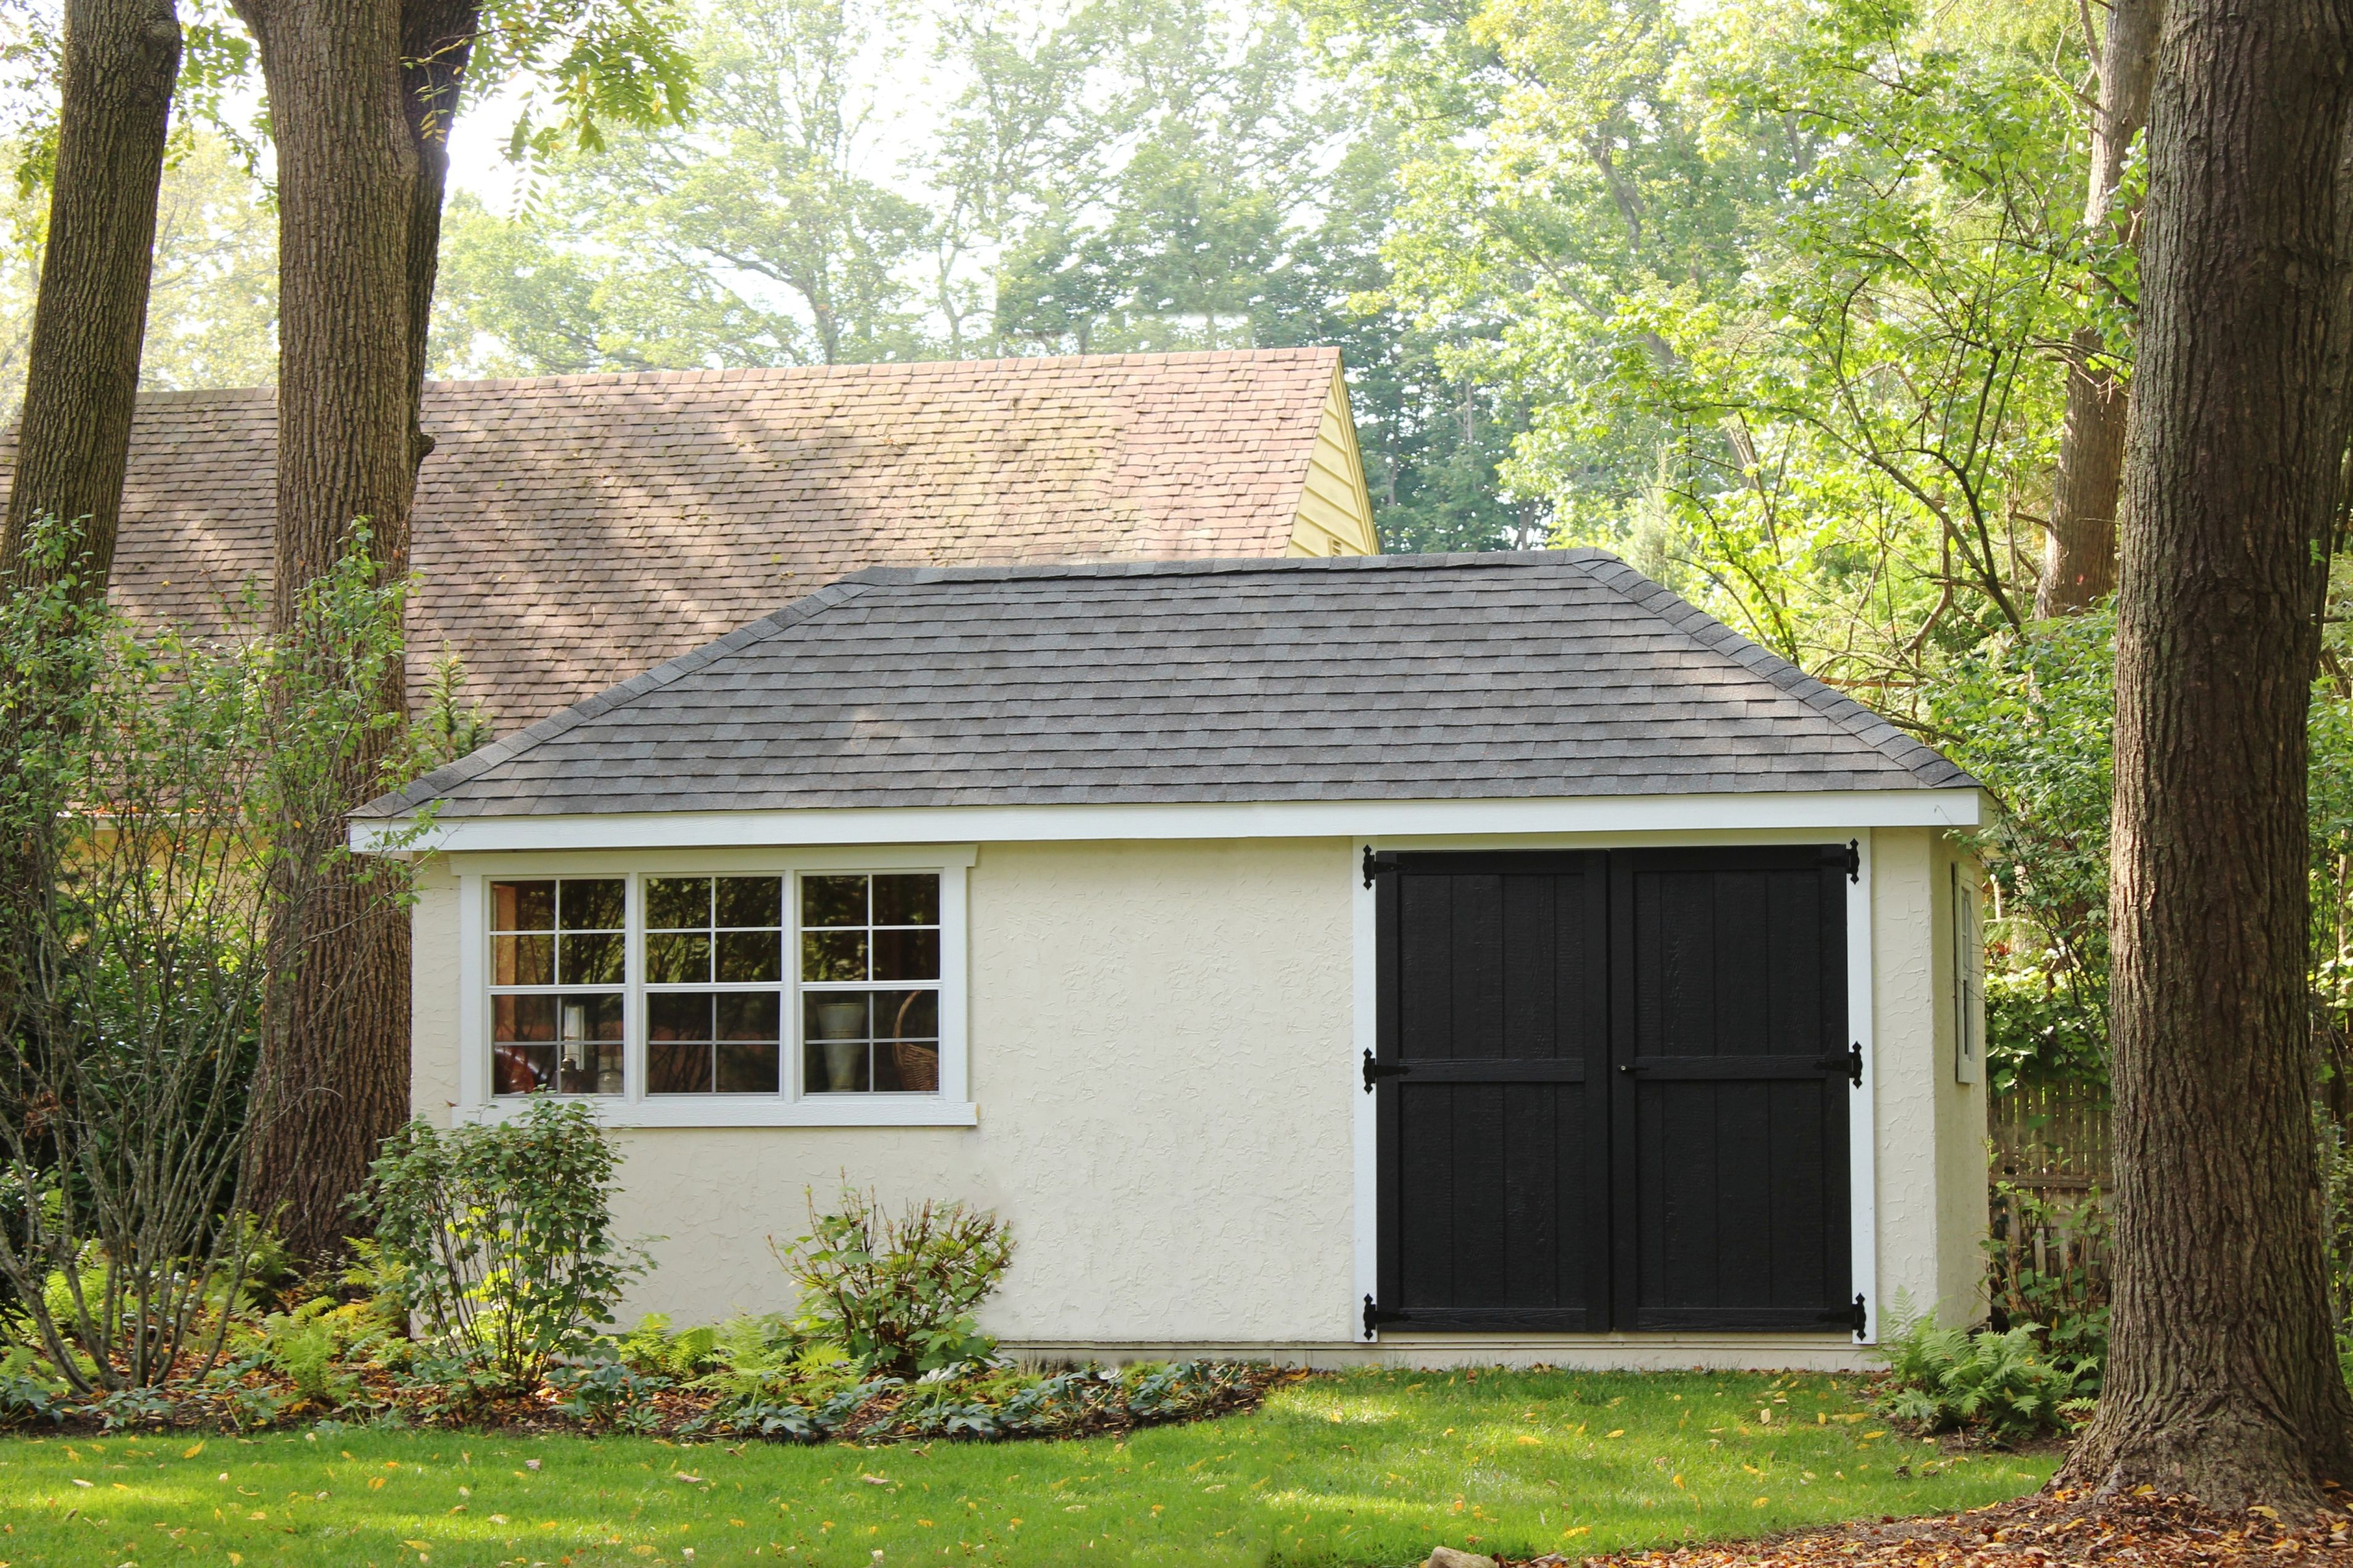 10 X20 Stucco Hip Roof Garden Shed Visit Our Website At Www Lappstructures Com For More Information Or To Place Shed Backyard Structures Historic Structures